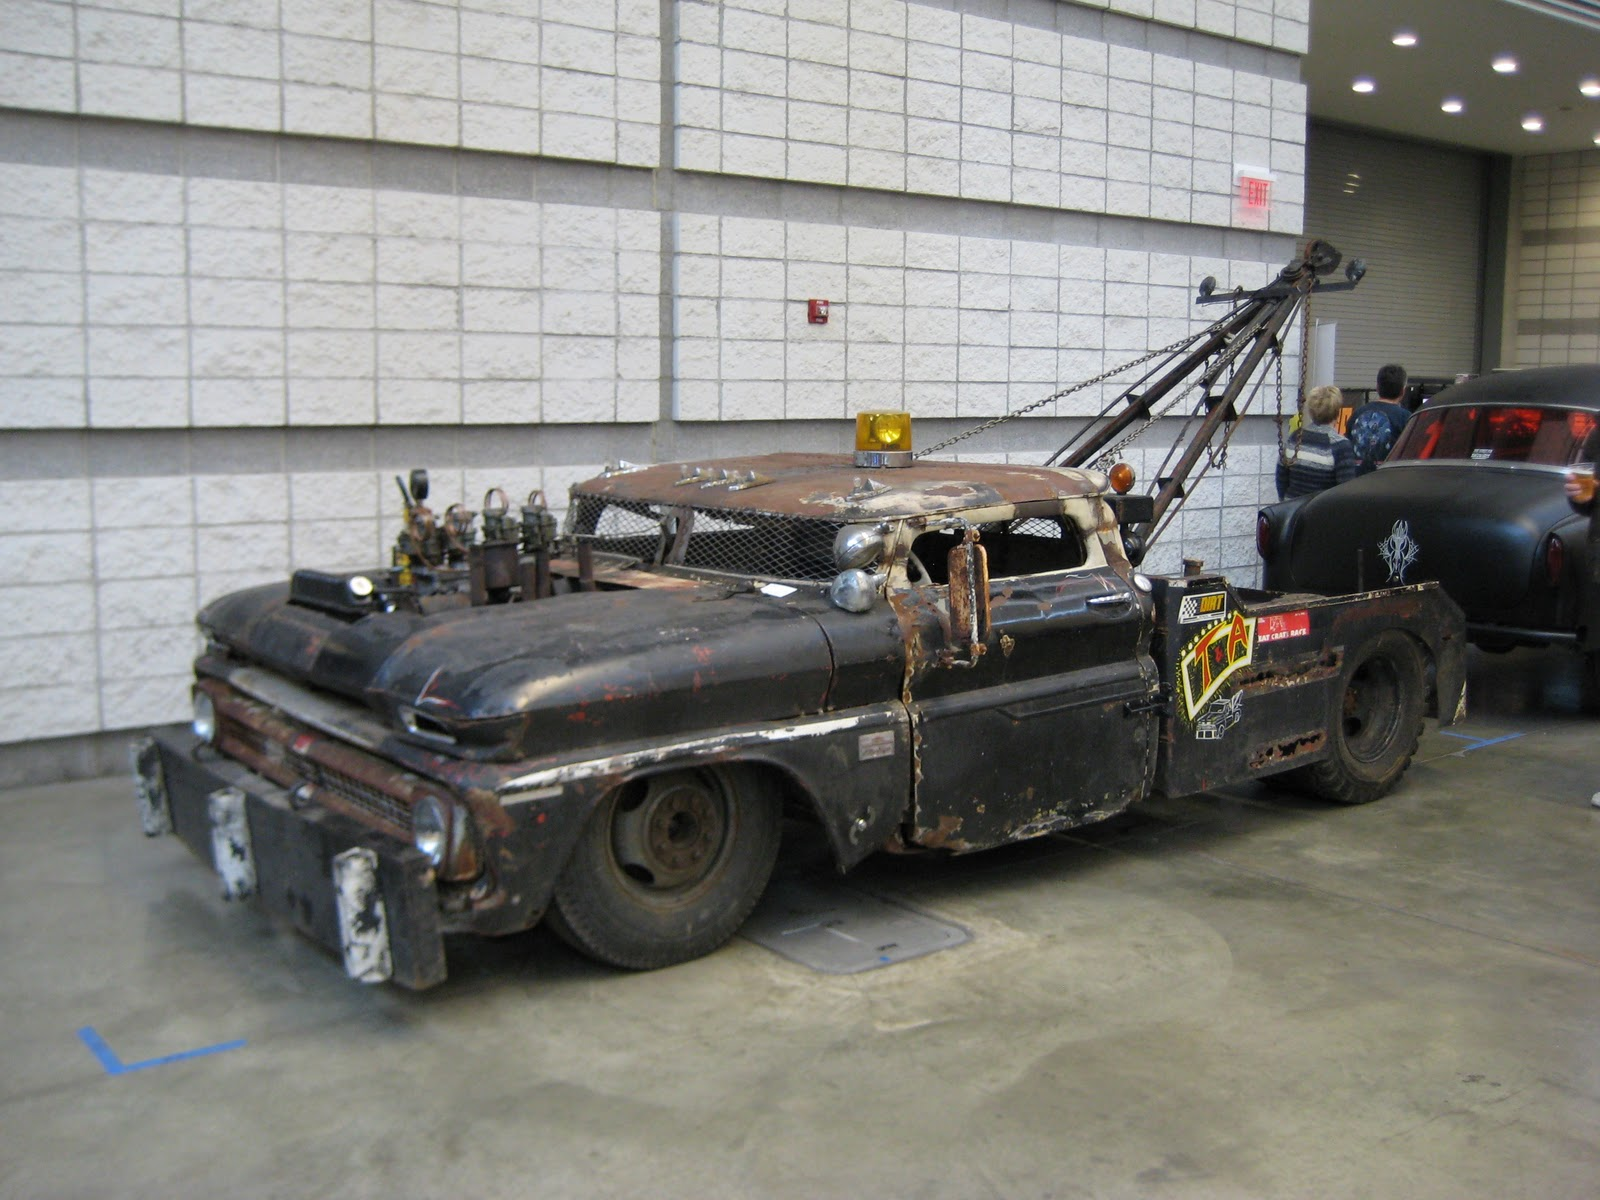 Rat Rod Gearrat Rod Pickup Truck Rat Rod Pickup Truck